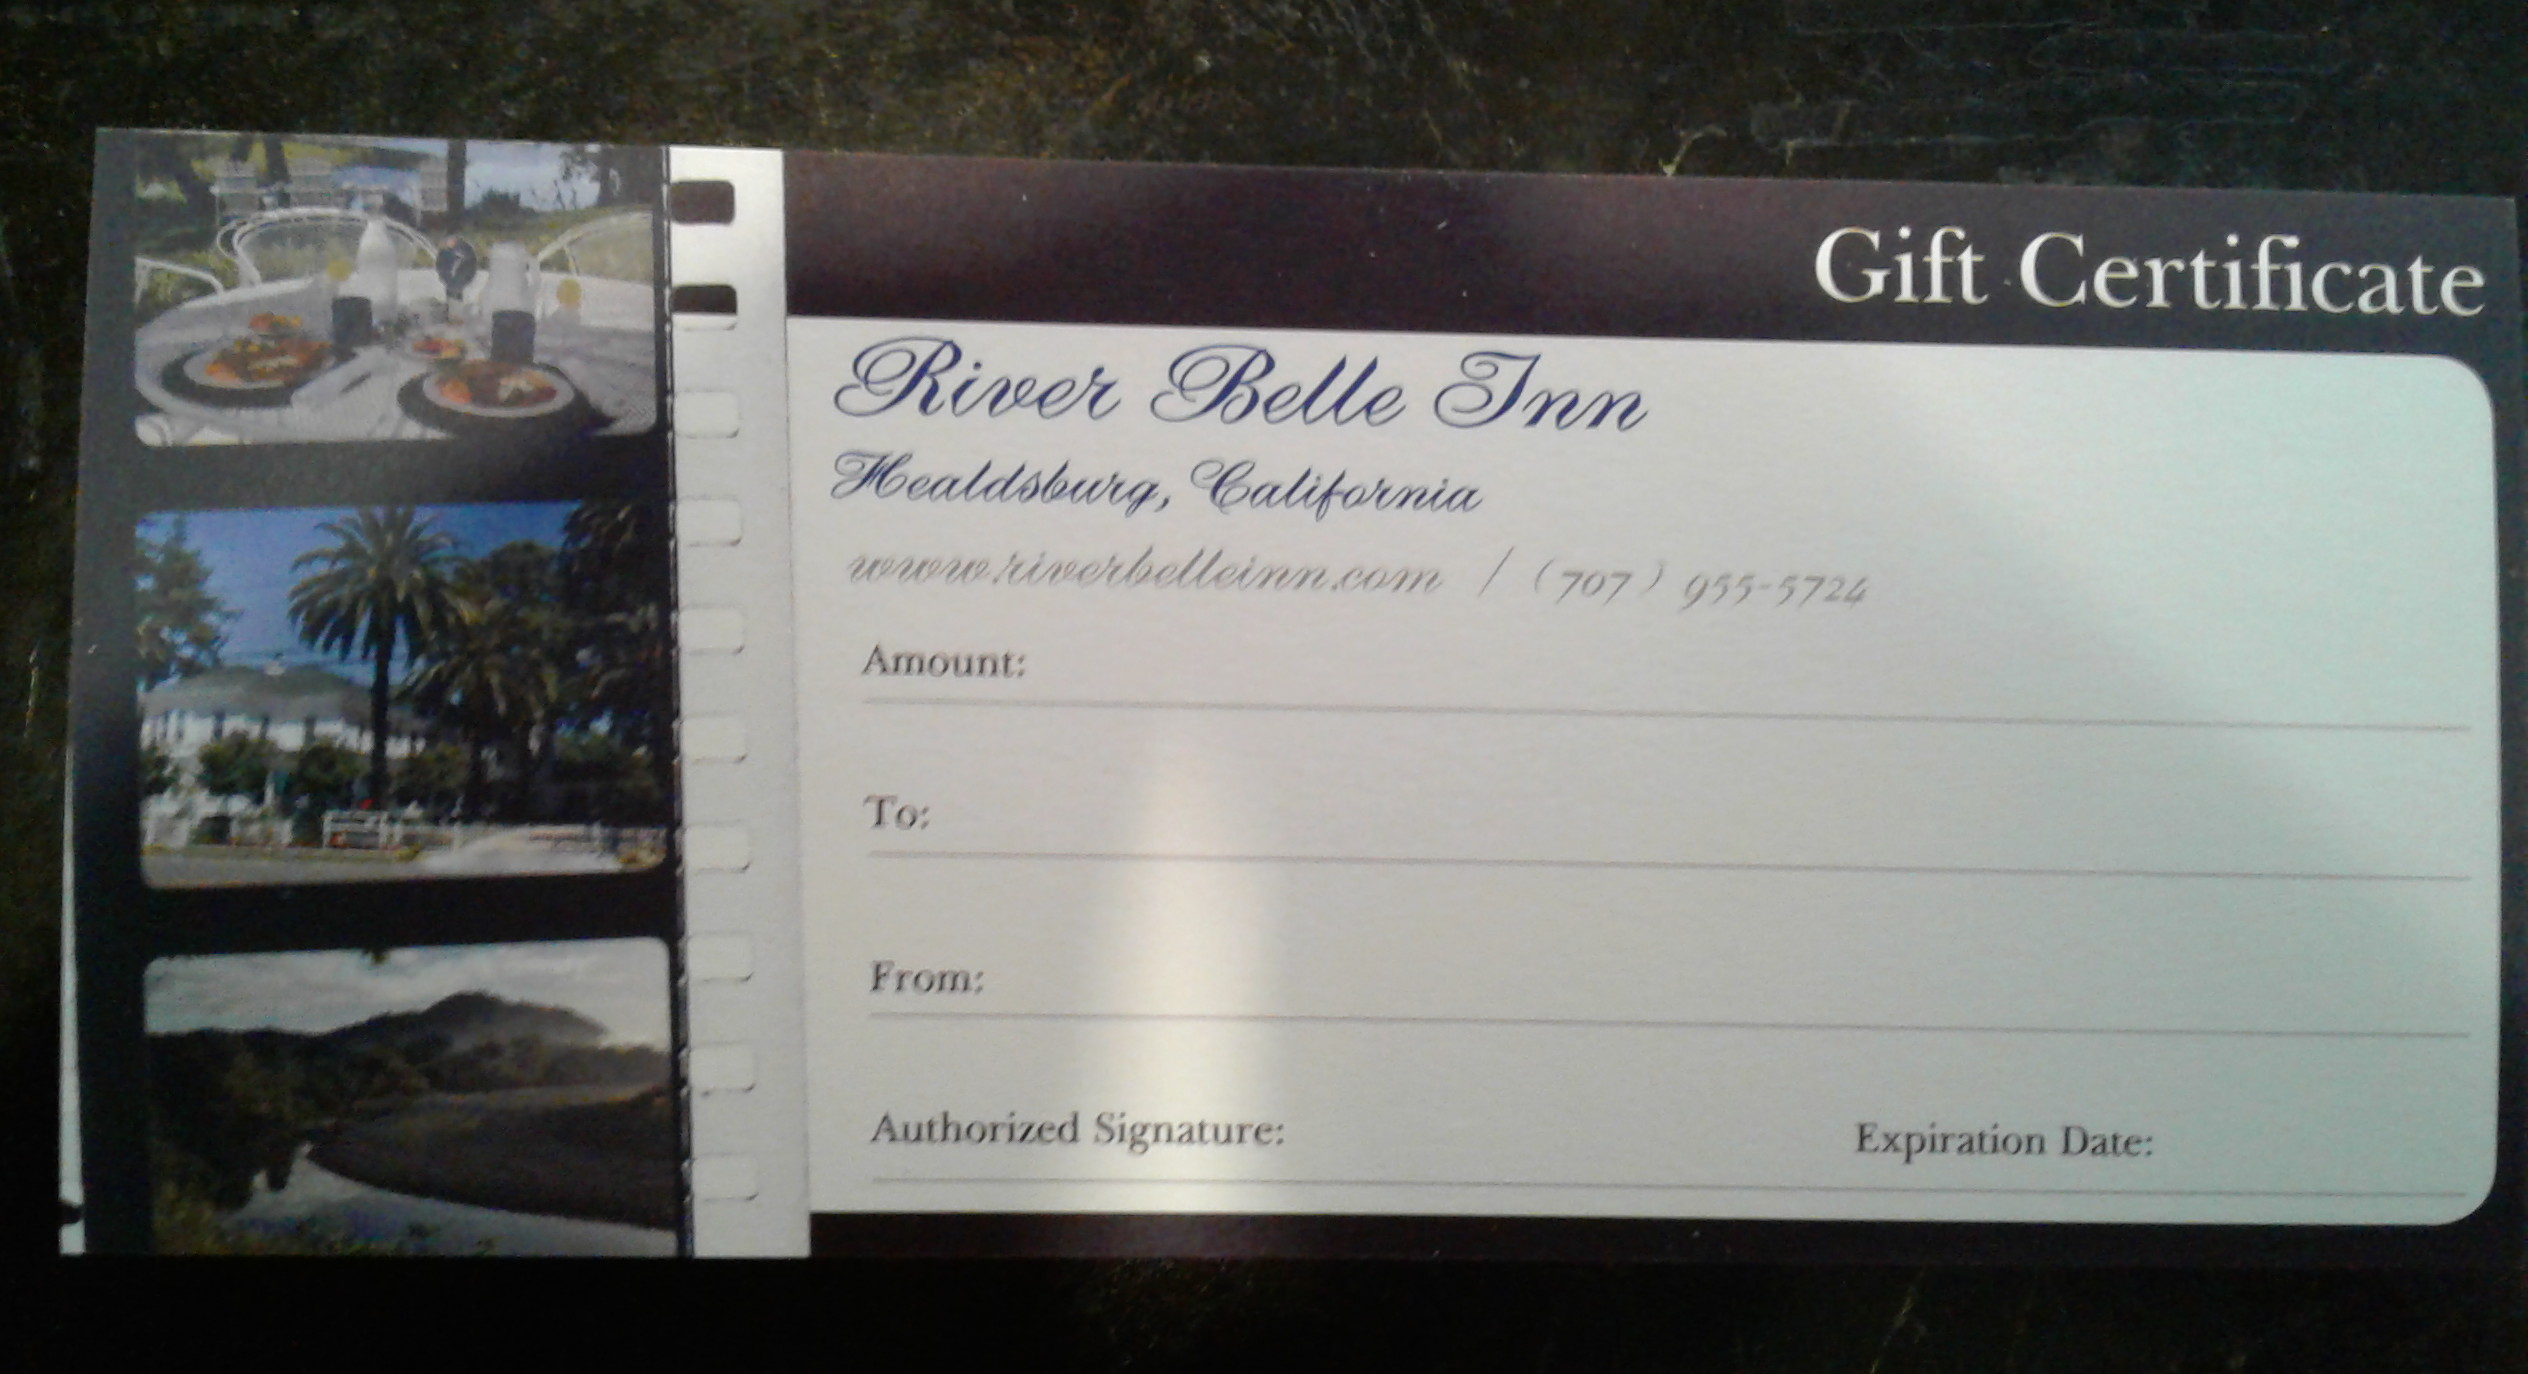 RBI GIFT CERTIFICATE